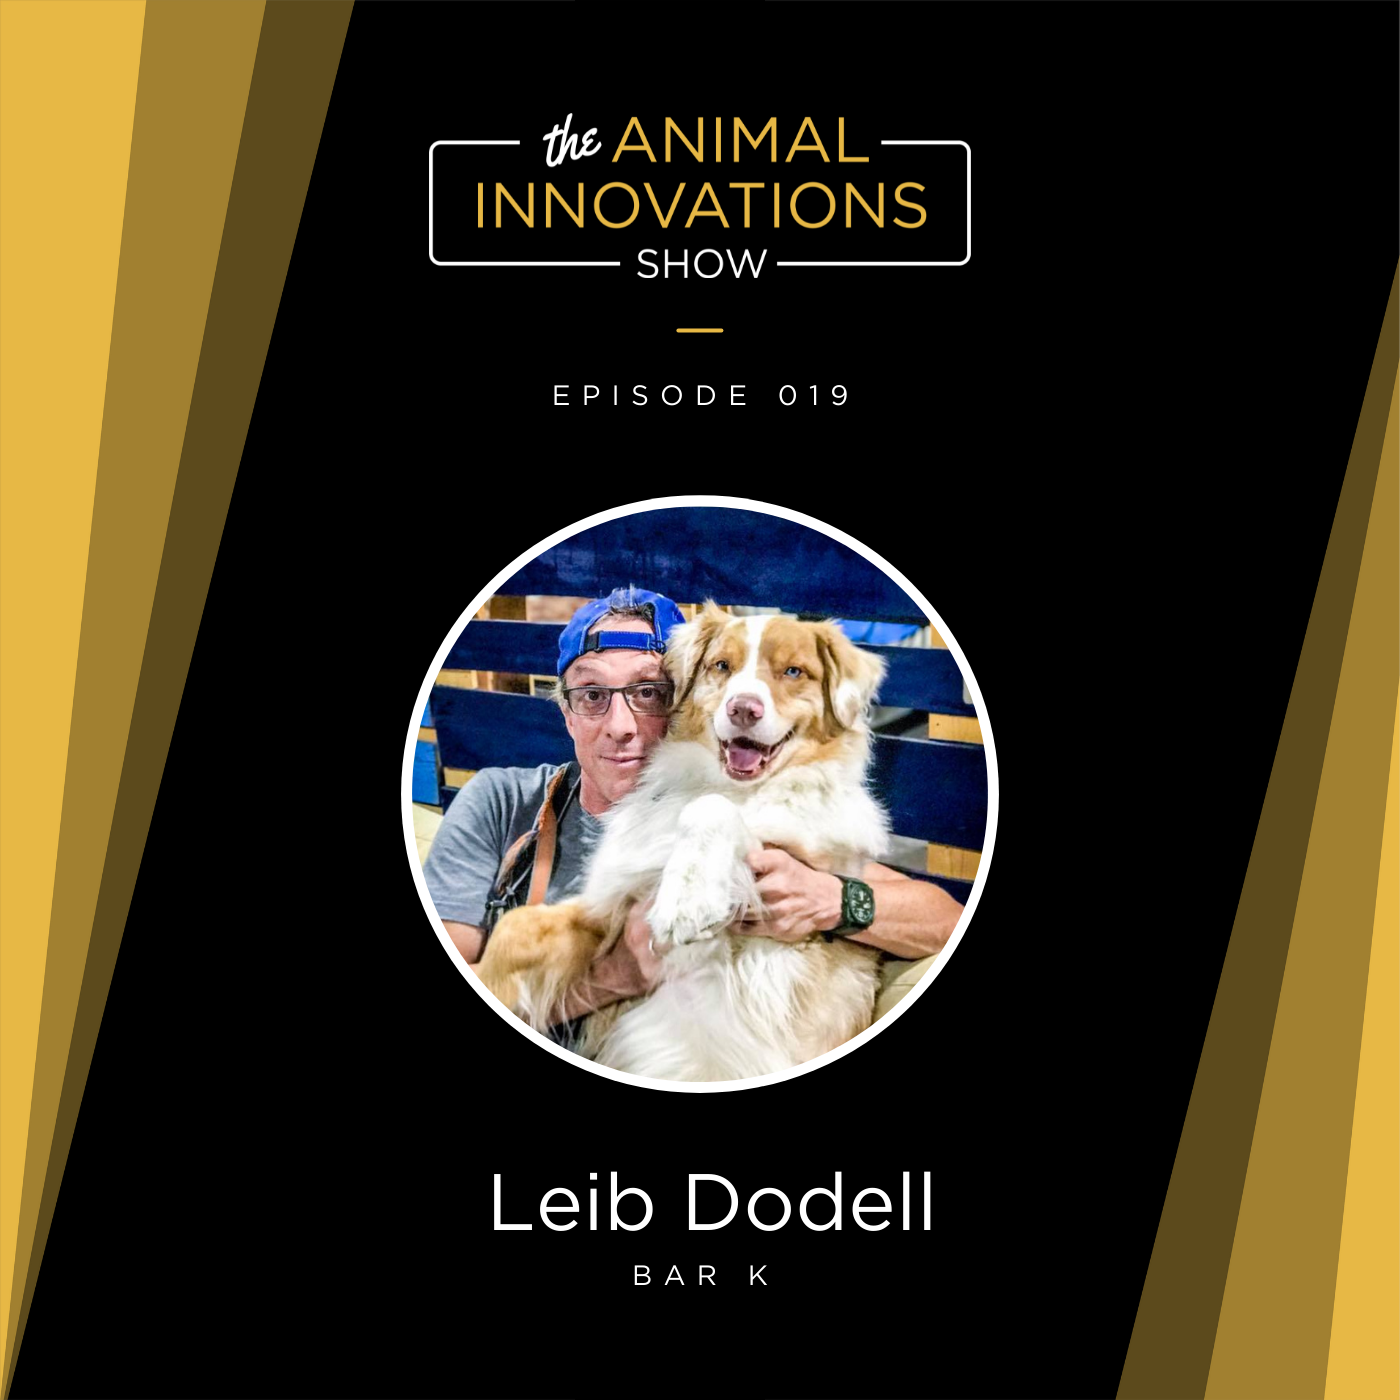 Leib Dodell